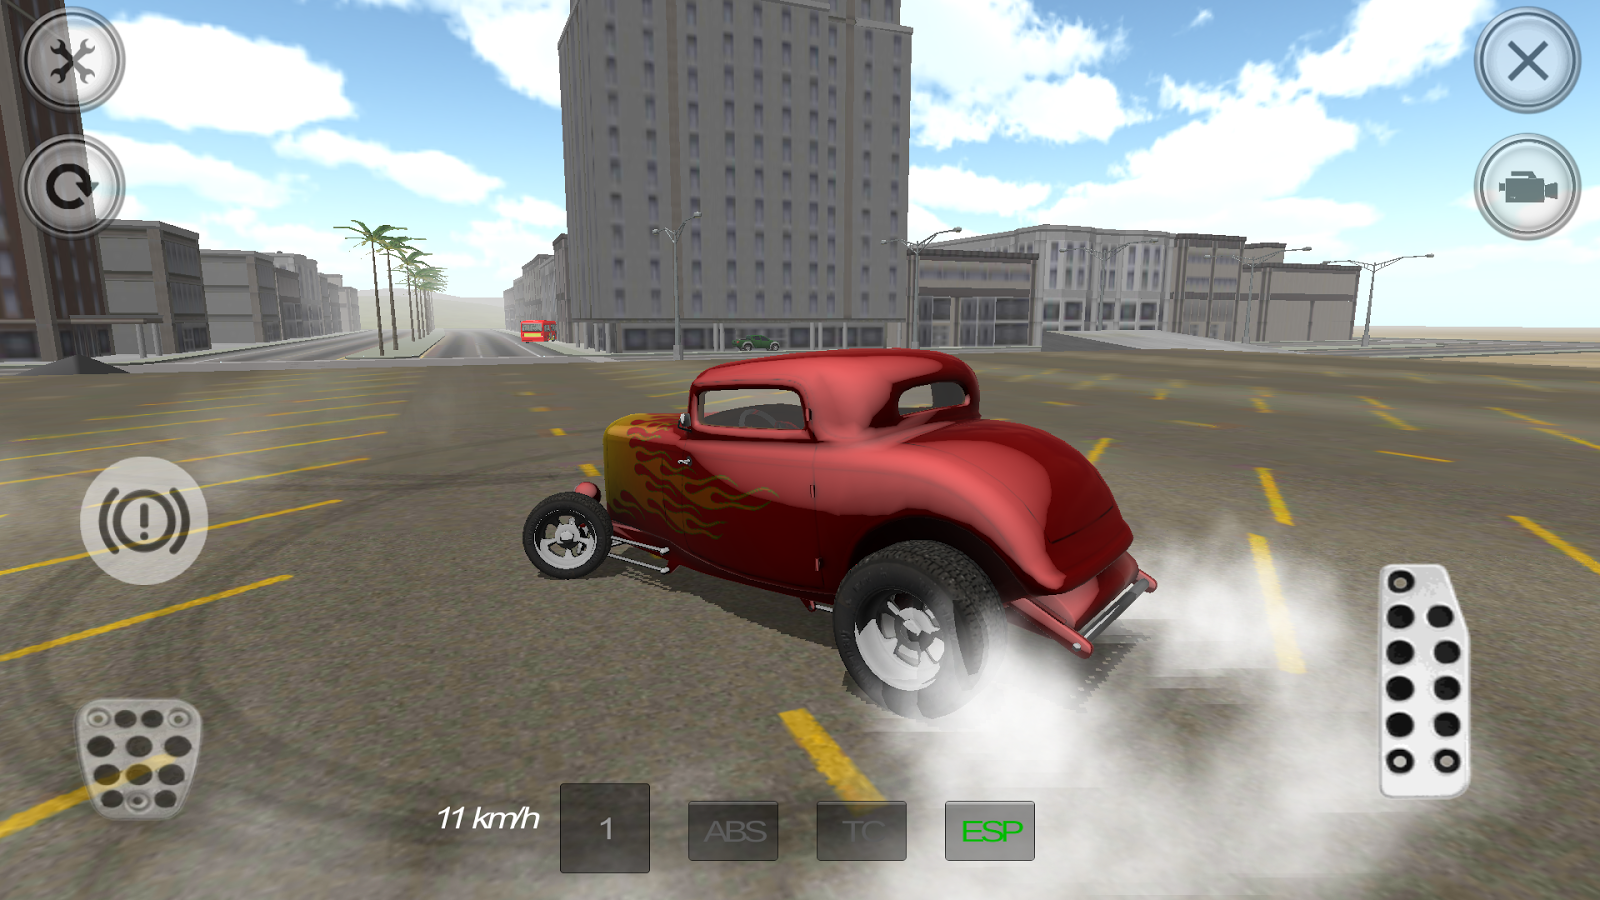 Fire Hot Rod Racer - Android Apps on Google Play